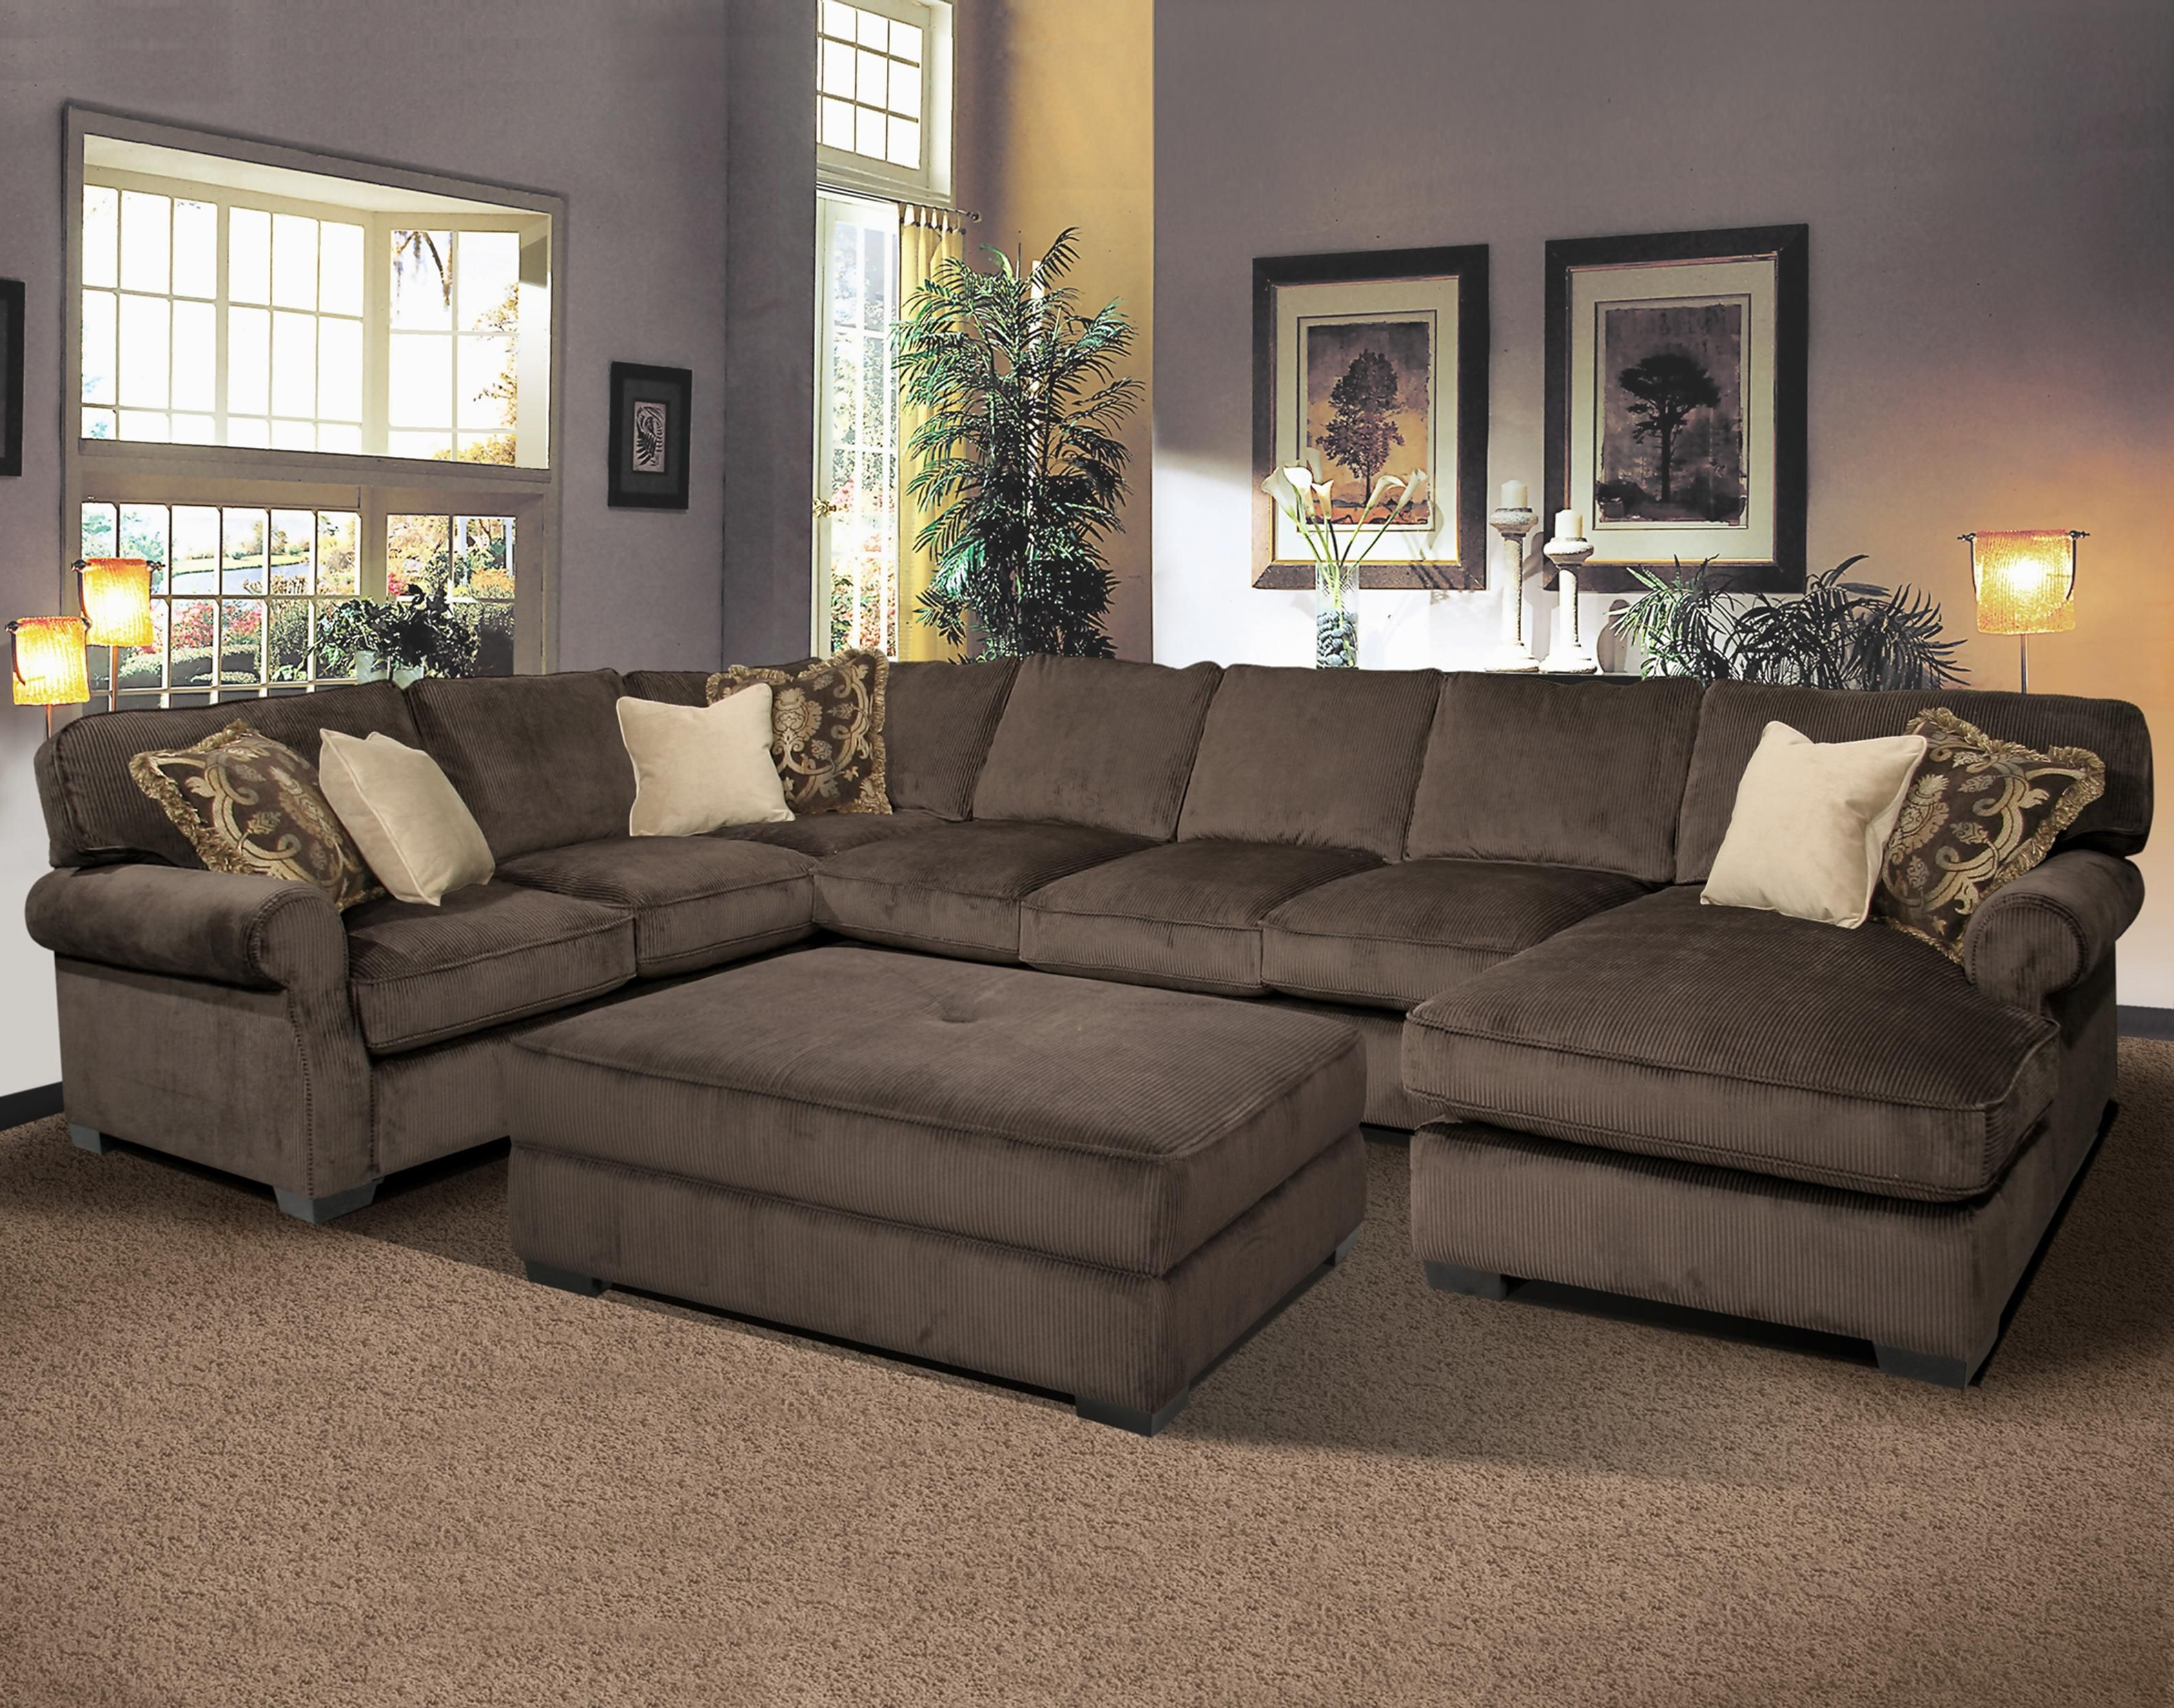 Grand Island Oversized Cocktail Ottoman For Sectional Sofa With Most Up To Date Sectional Sofas With Oversized Ottoman (Gallery 2 of 20)